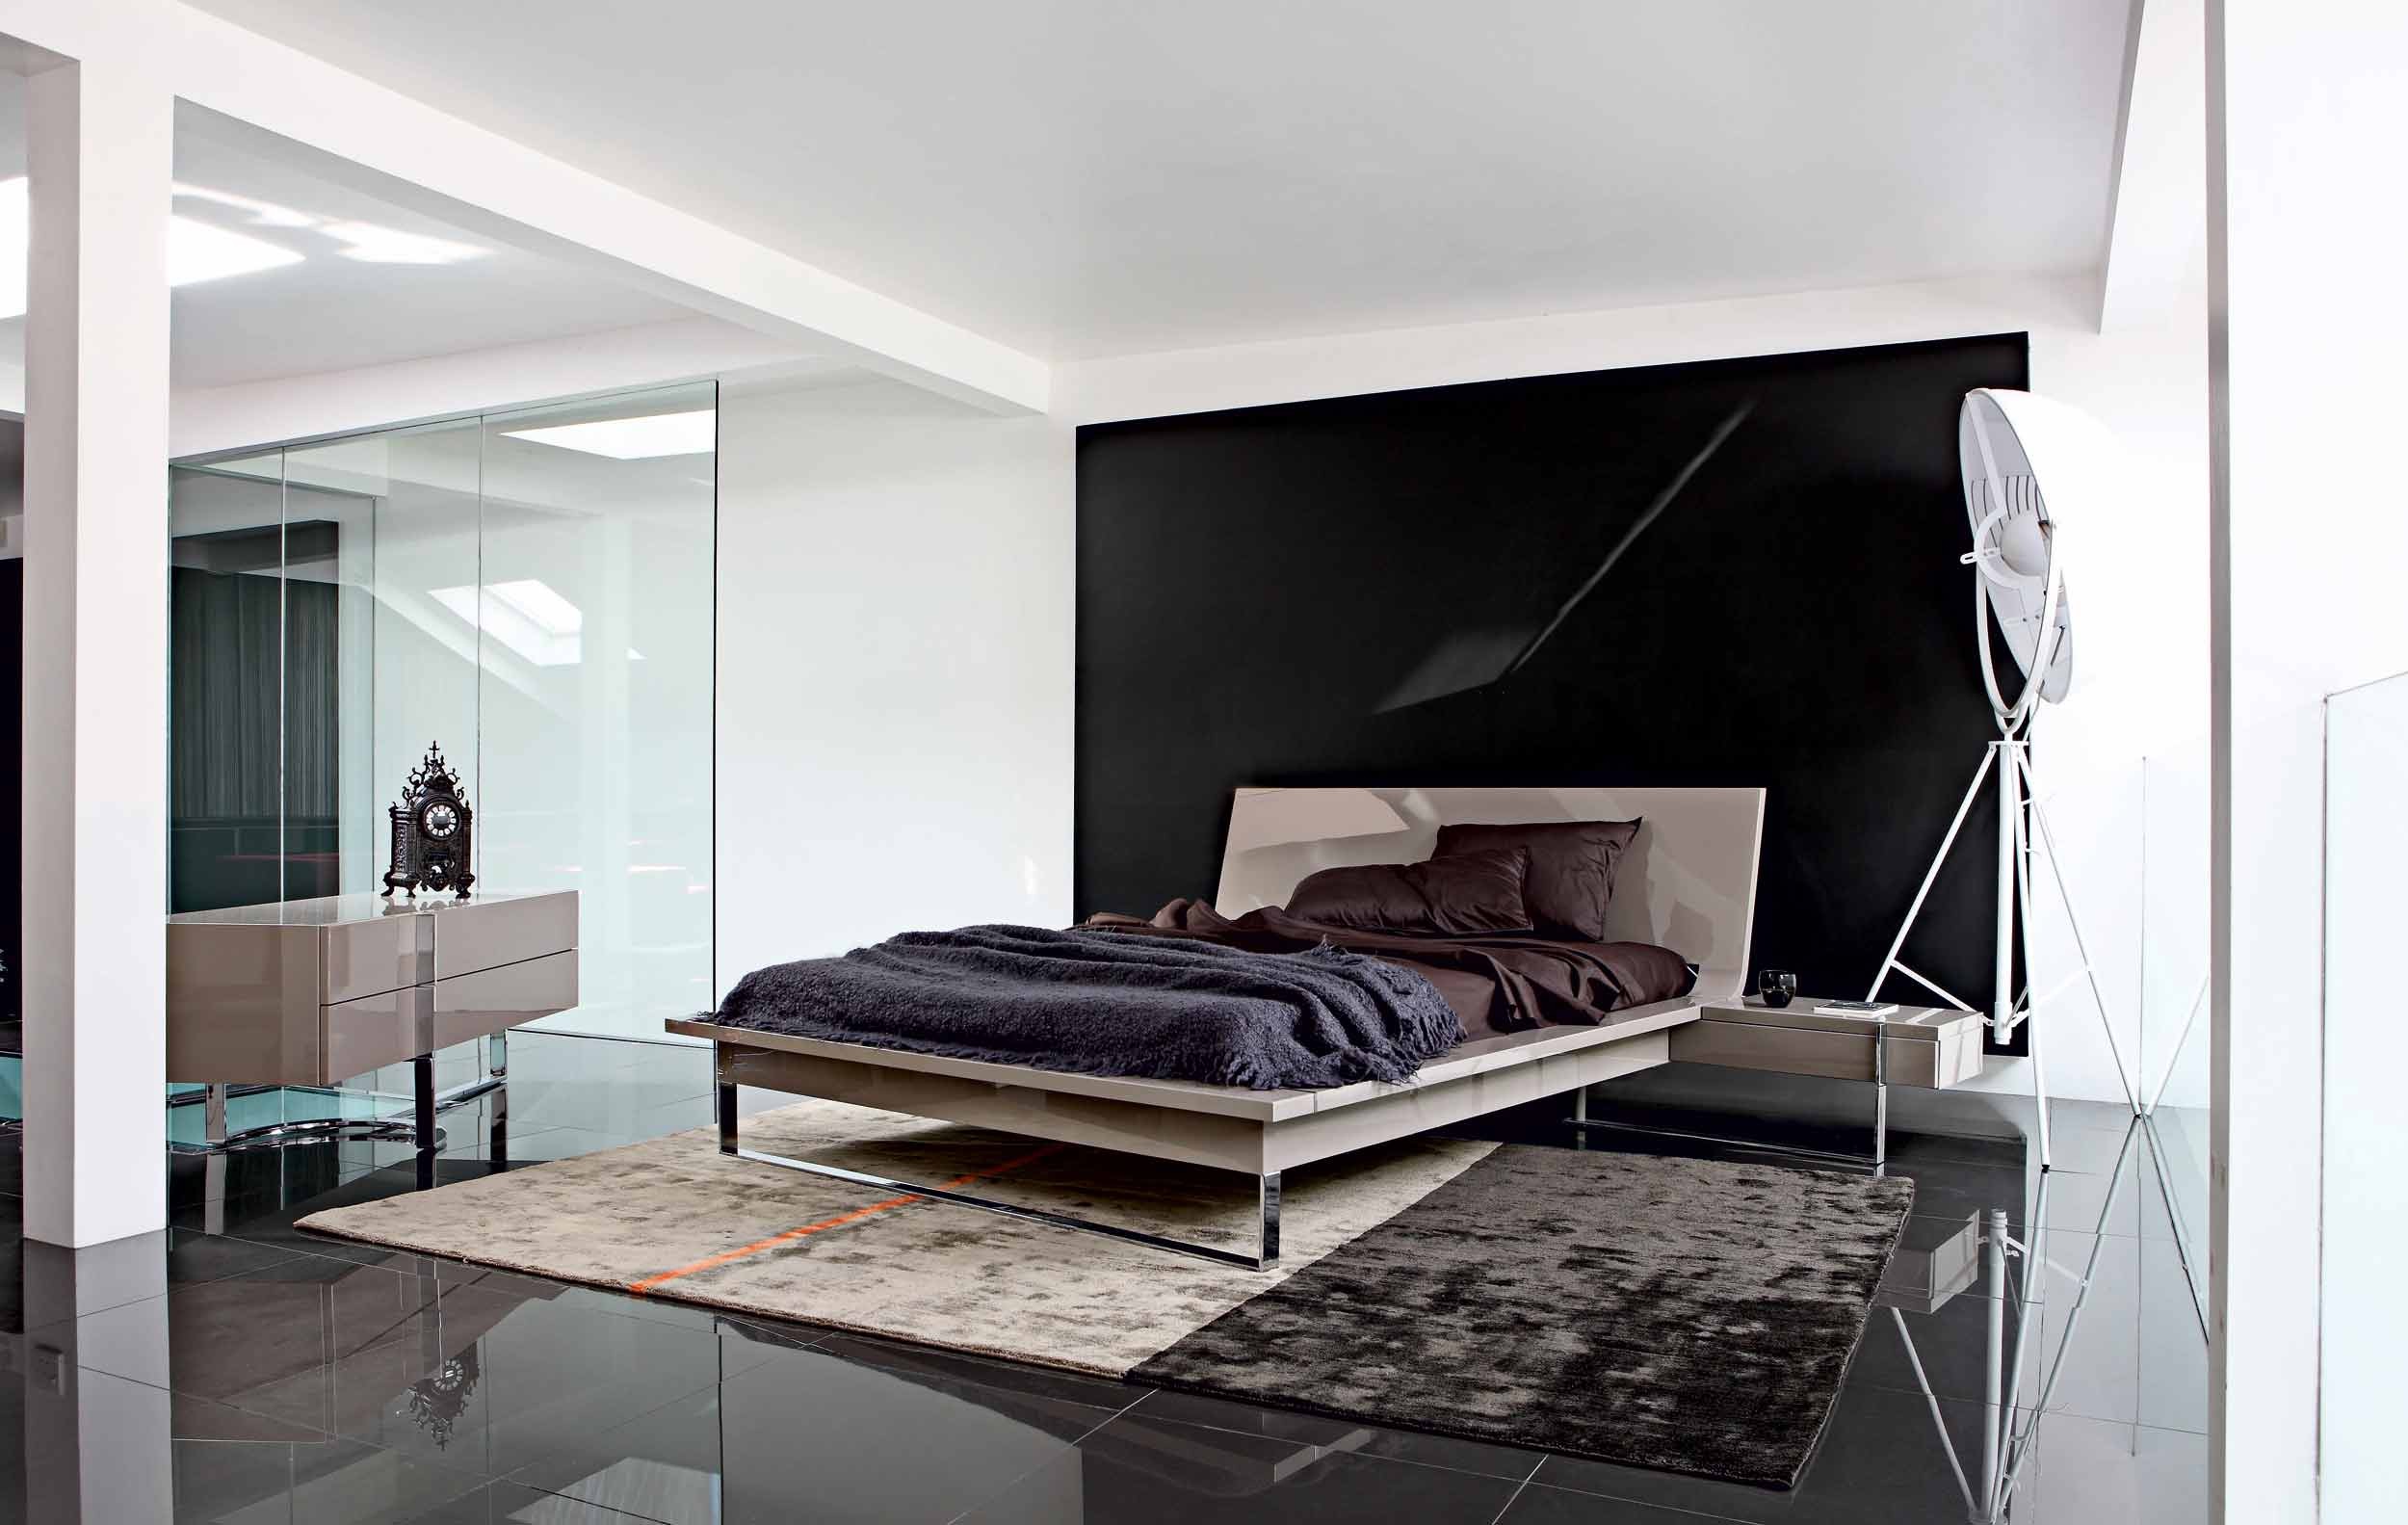 Minimalist bedroom interior design ideas for Modern home decor tumblr